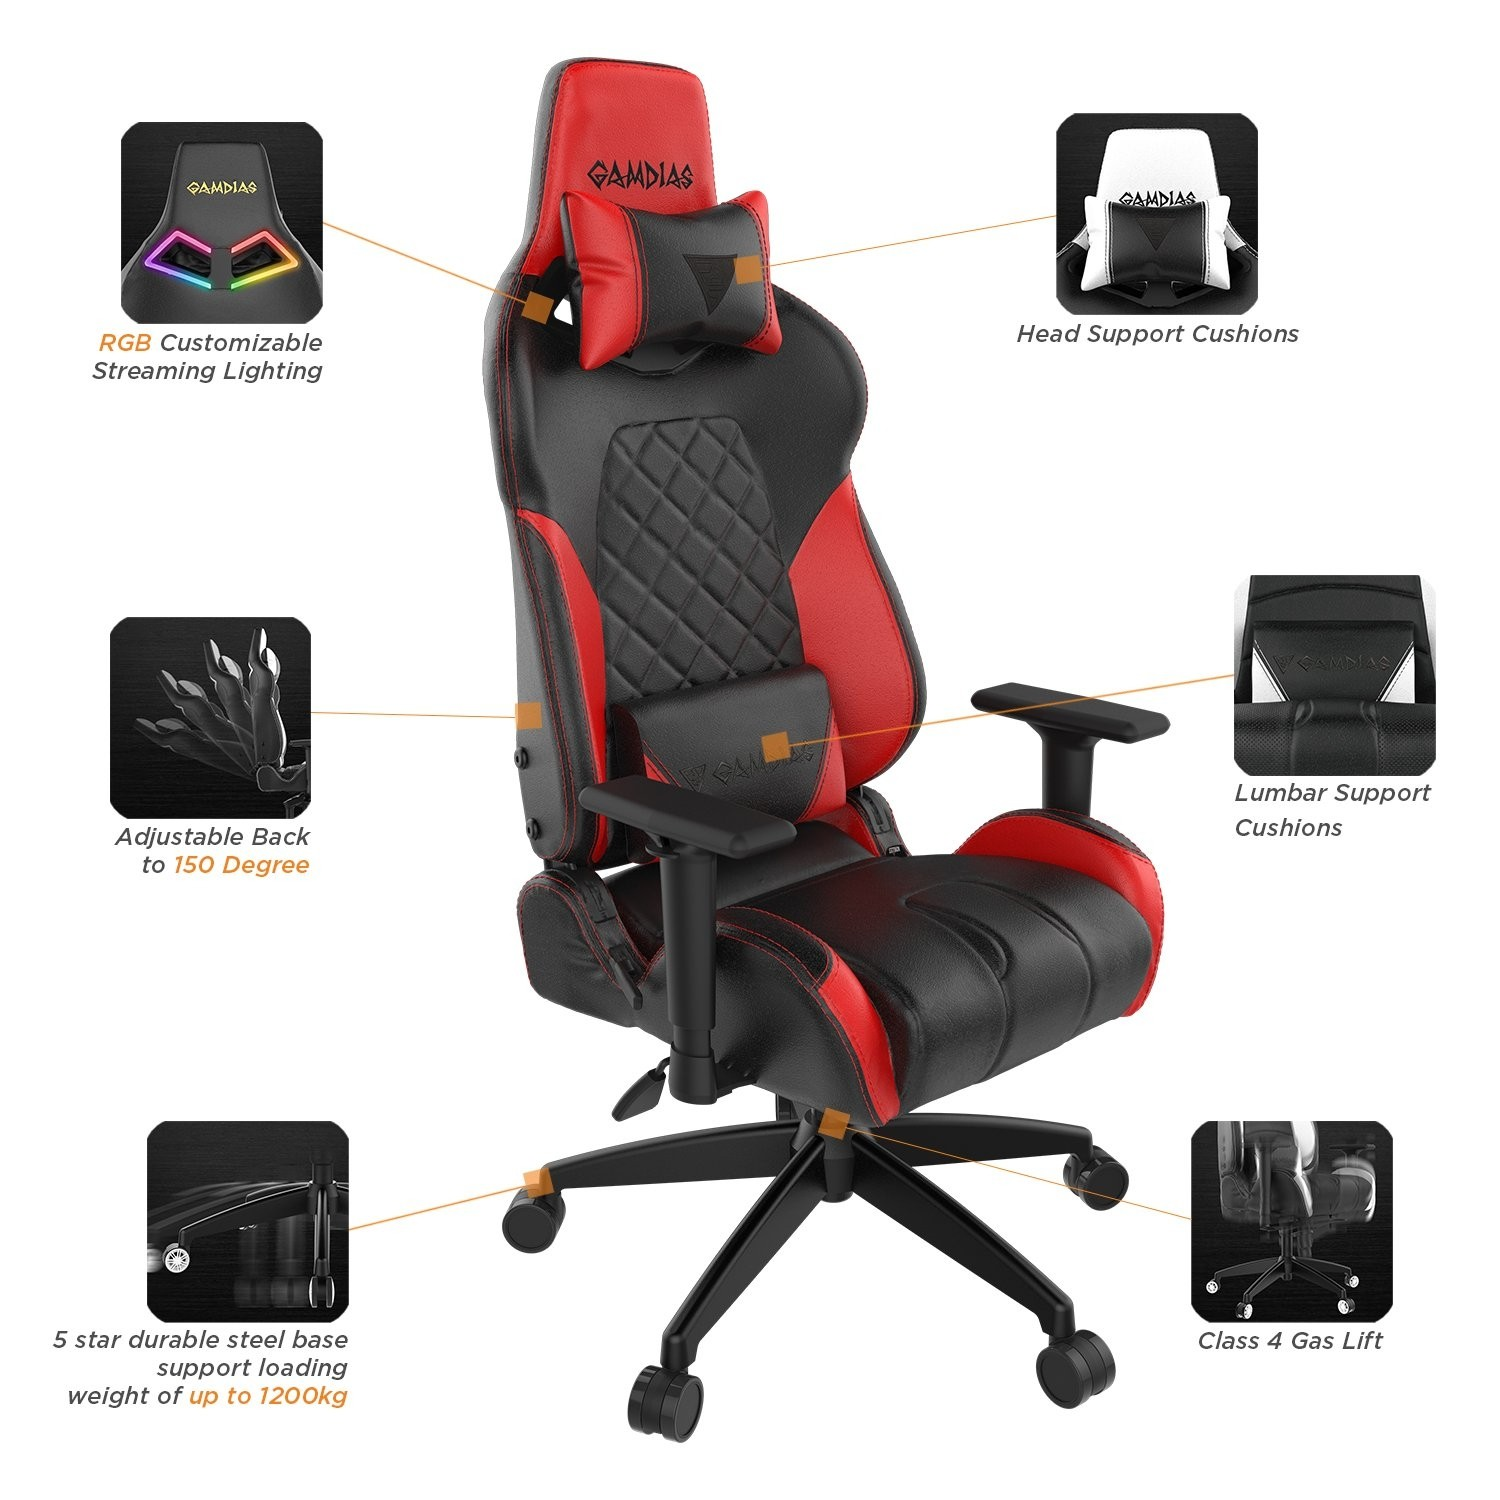 Admirable Gamdias Achilles E1 L Multi Color Rgb Gaming Chair High Back Headrest And Lumbar Black Red Achill Alphanode Cool Chair Designs And Ideas Alphanodeonline